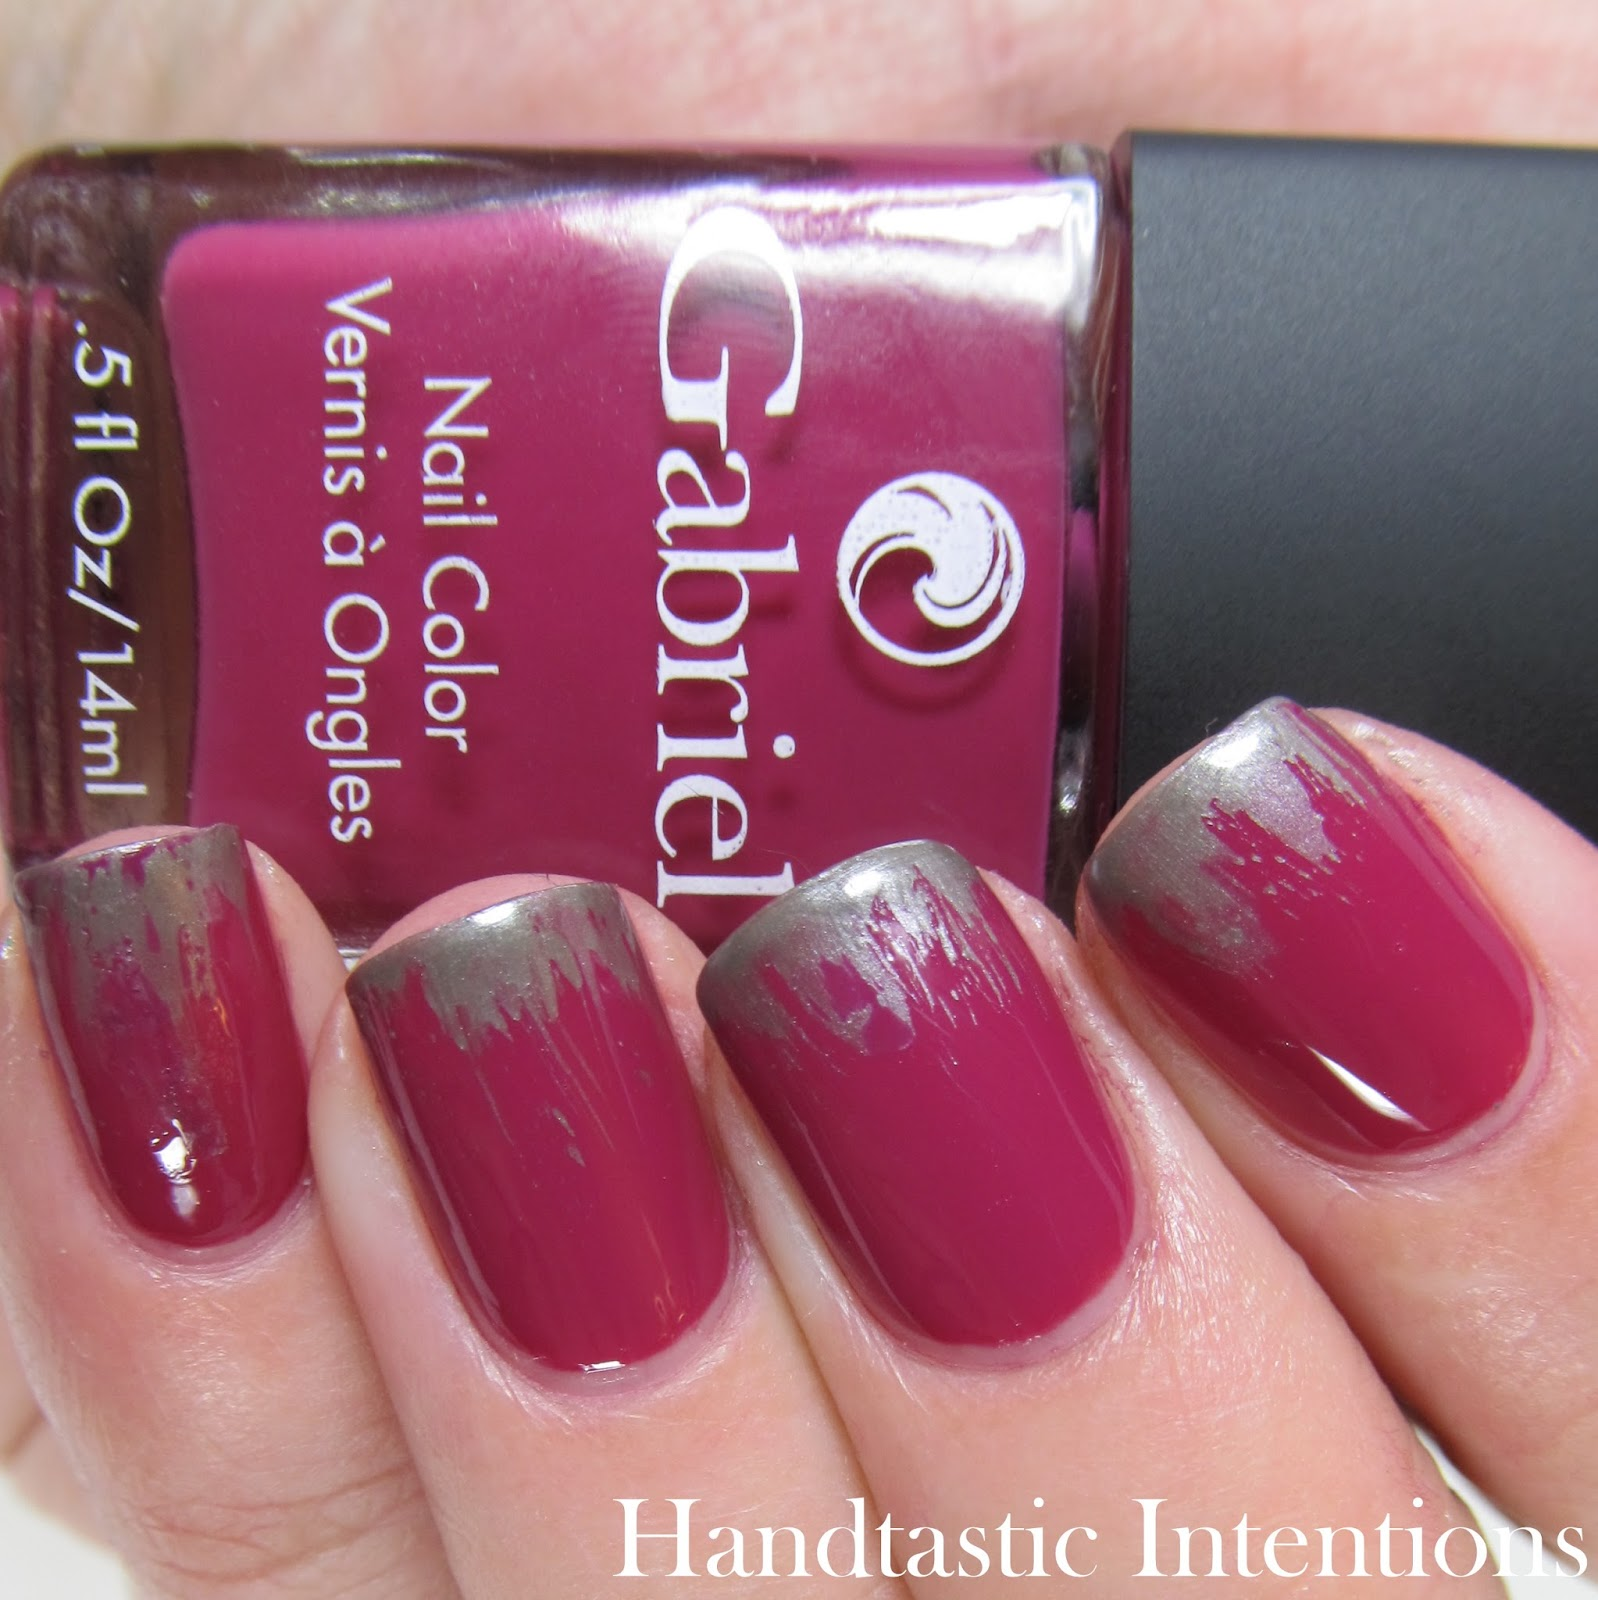 Handtastic Intentions: Work Wear Wednesdays: Dry Brush French Tip